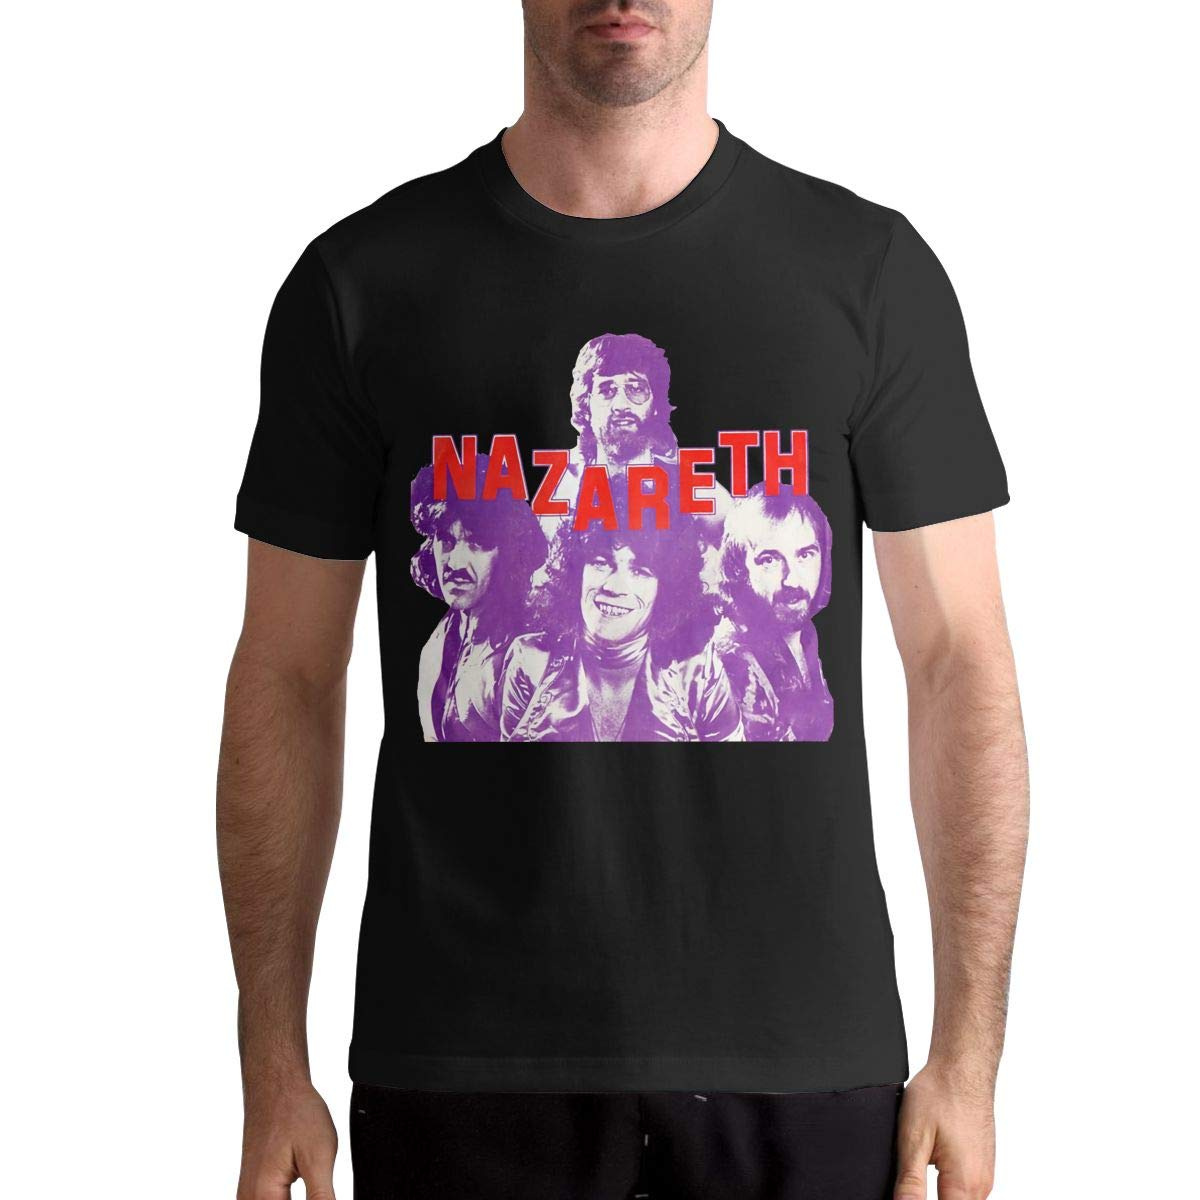 Nazareth Hard Rock Band Pattern Men's Ultra Cotton Adult Fashion T-Shirt Black Hot Selling 100 % Cotton Tee Shirts top tee image